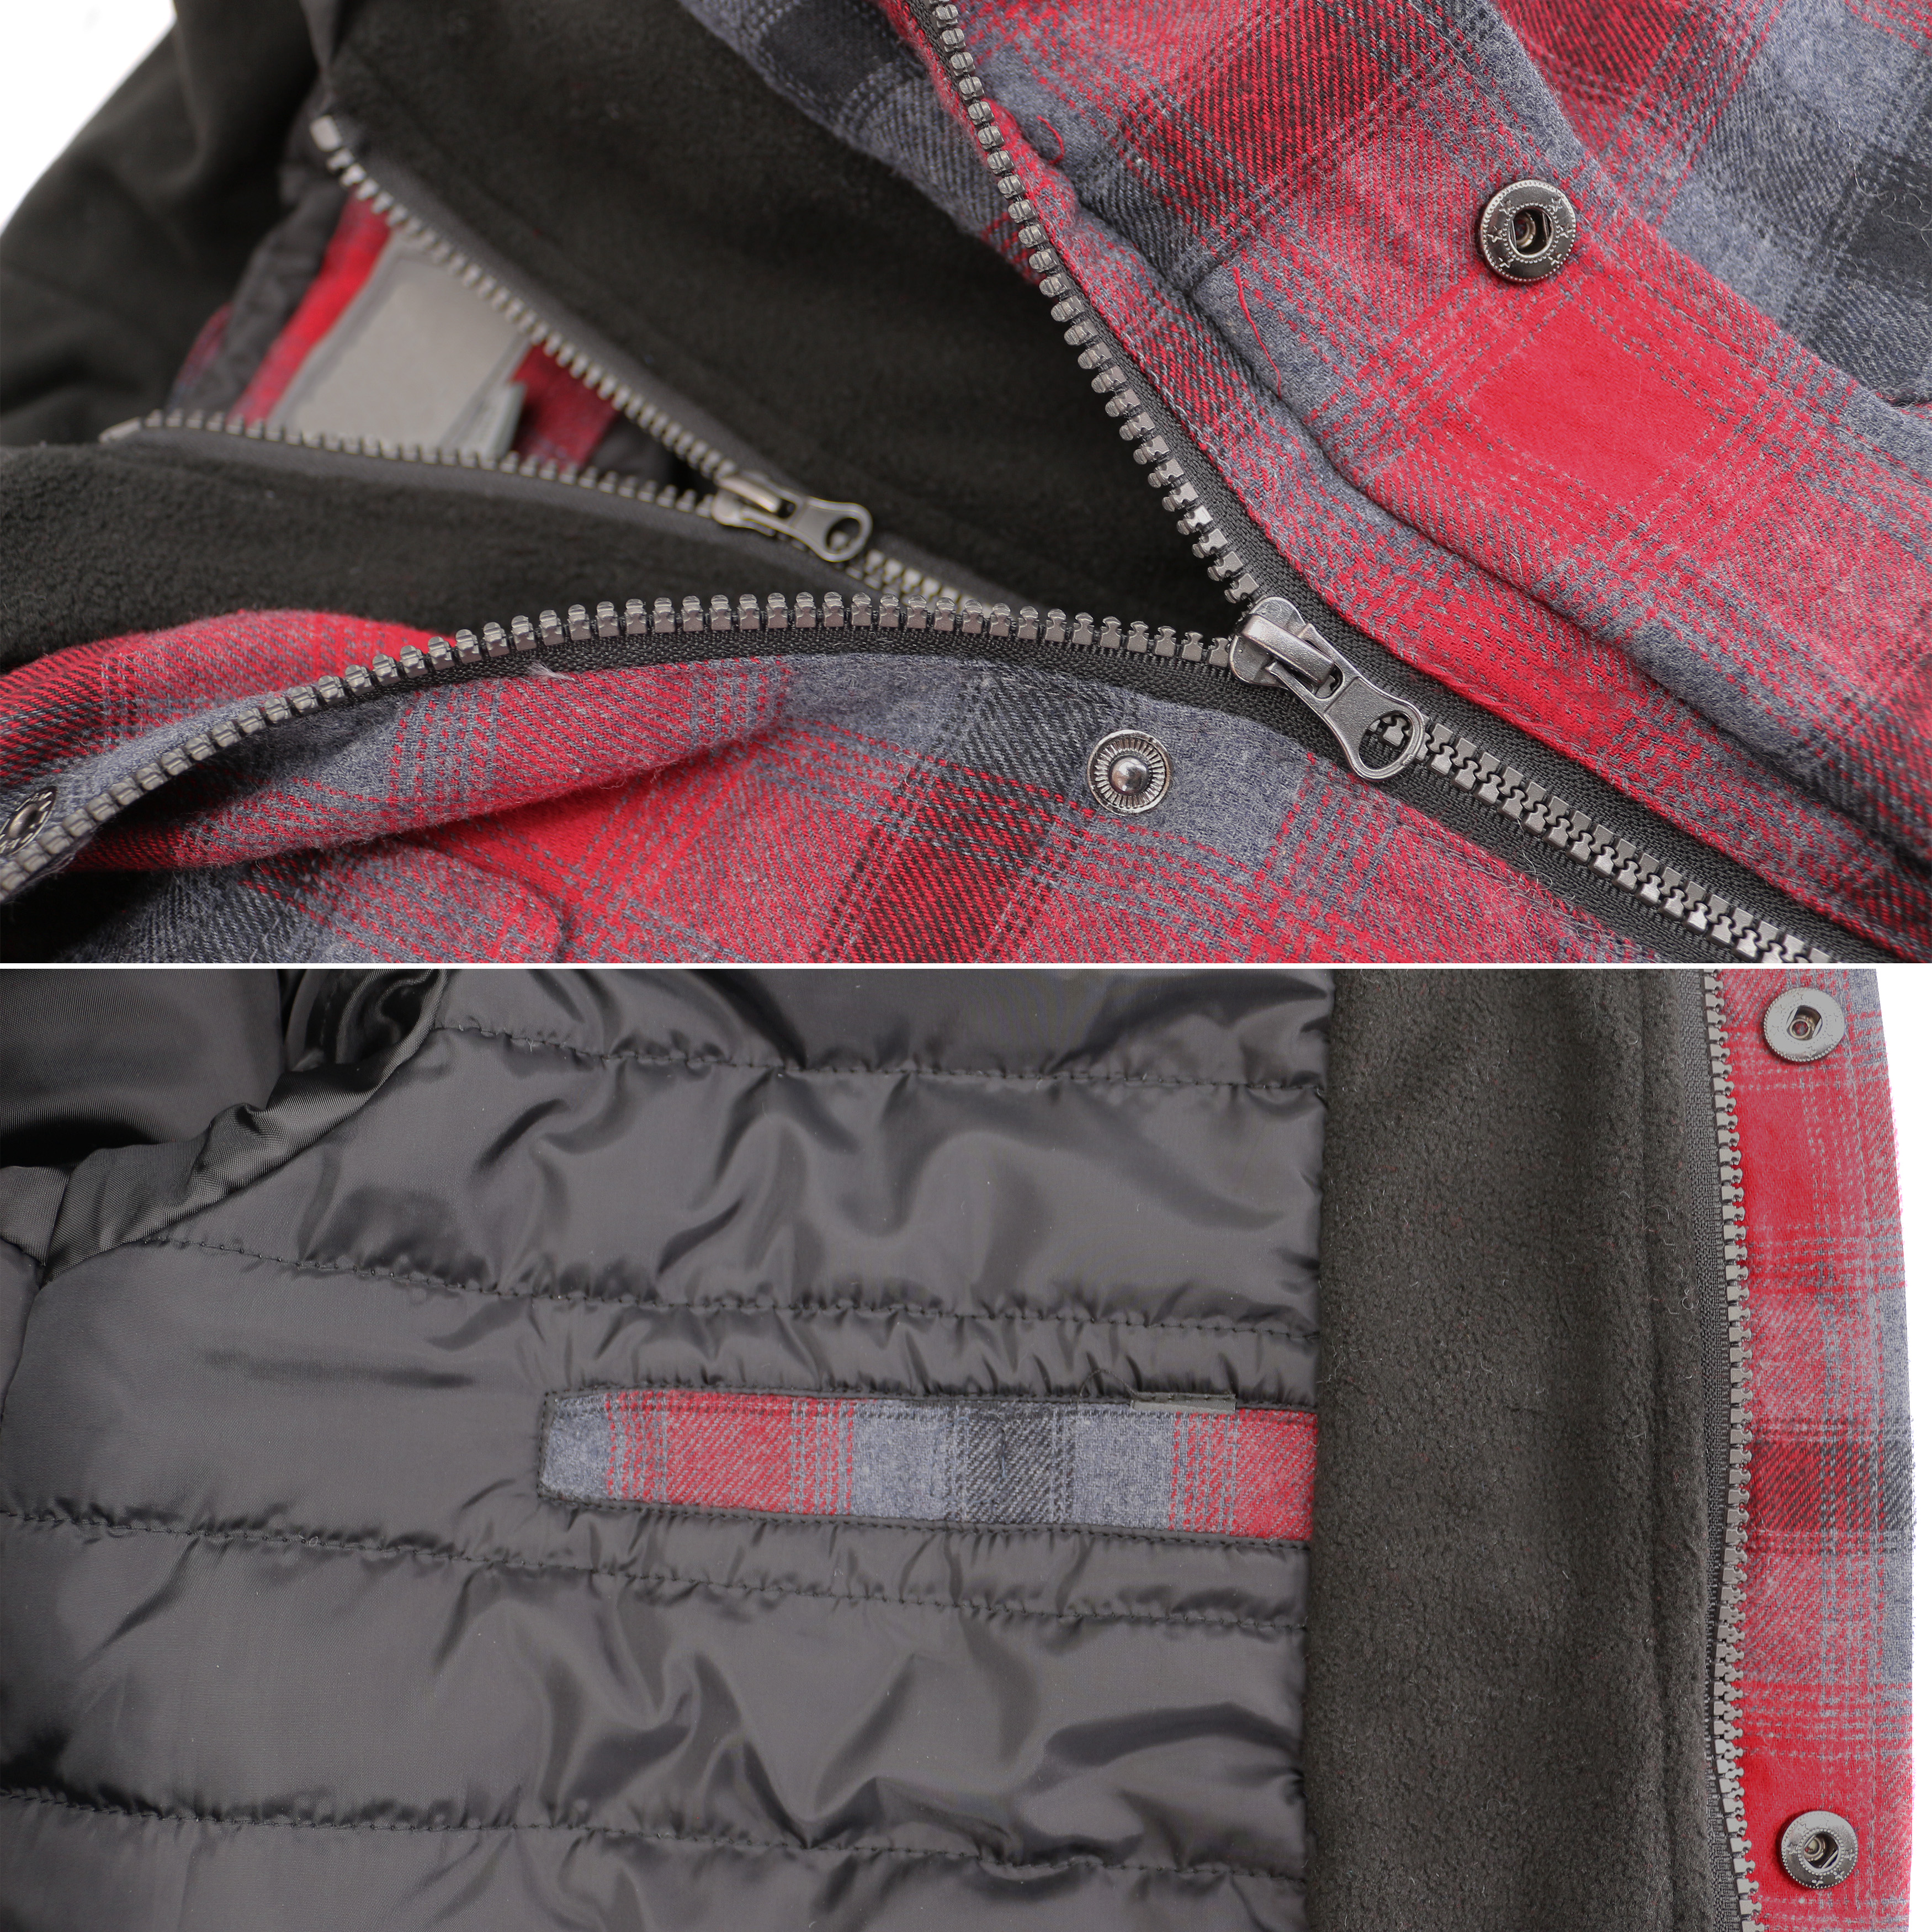 vkwear-Men-039-s-Quilted-Lined-Cotton-Plaid-Flannel-Layered-Zip-Up-Hoodie-Jacket thumbnail 14